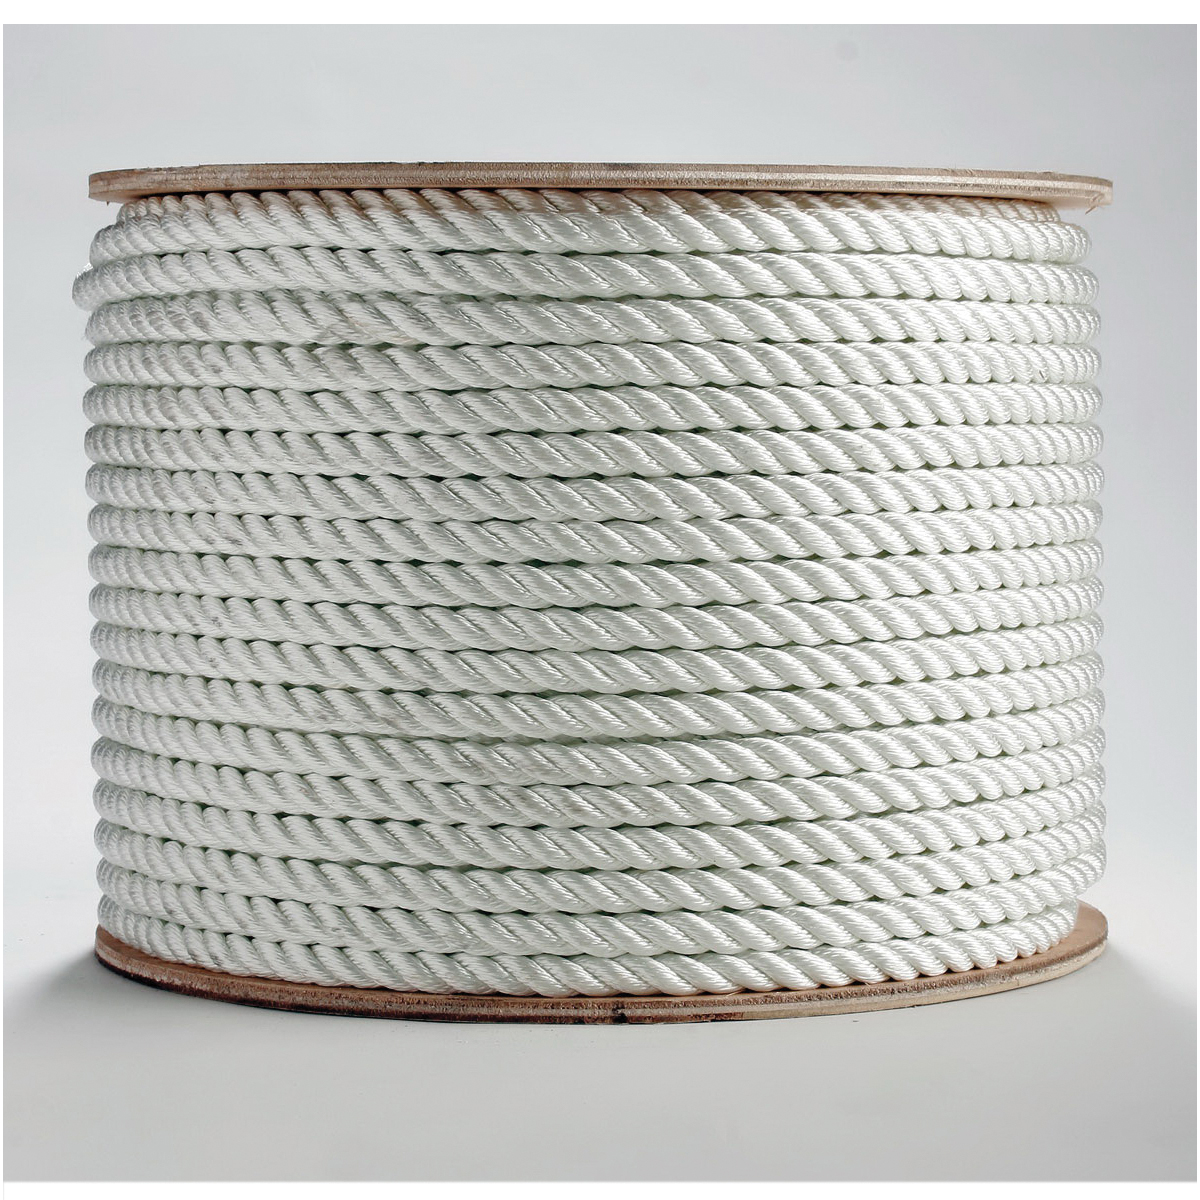 Erin Rope TWN120600 3-Strand Twisted Rope, 3/8 in Dia x 600 ft L, White, Nylon